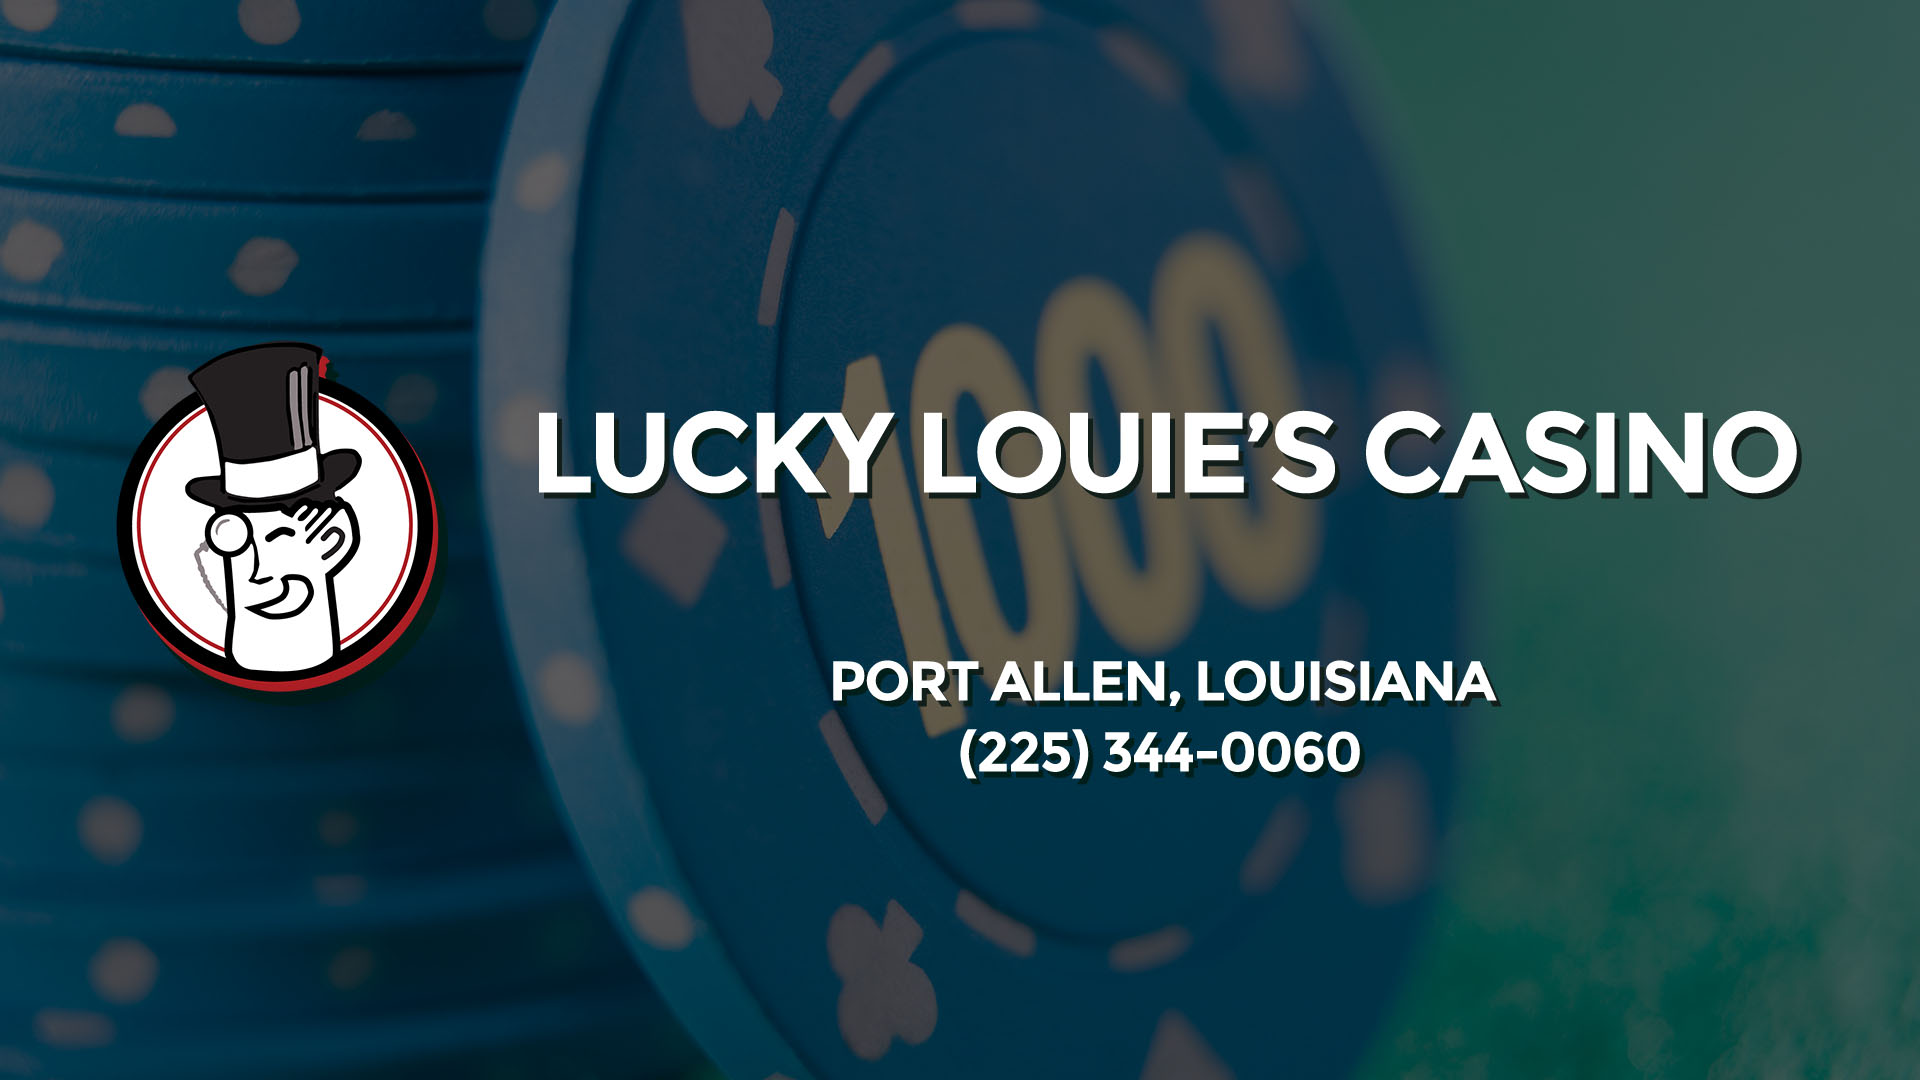 LUCKY LOUIE'S CASINO PORT ALLEN LA